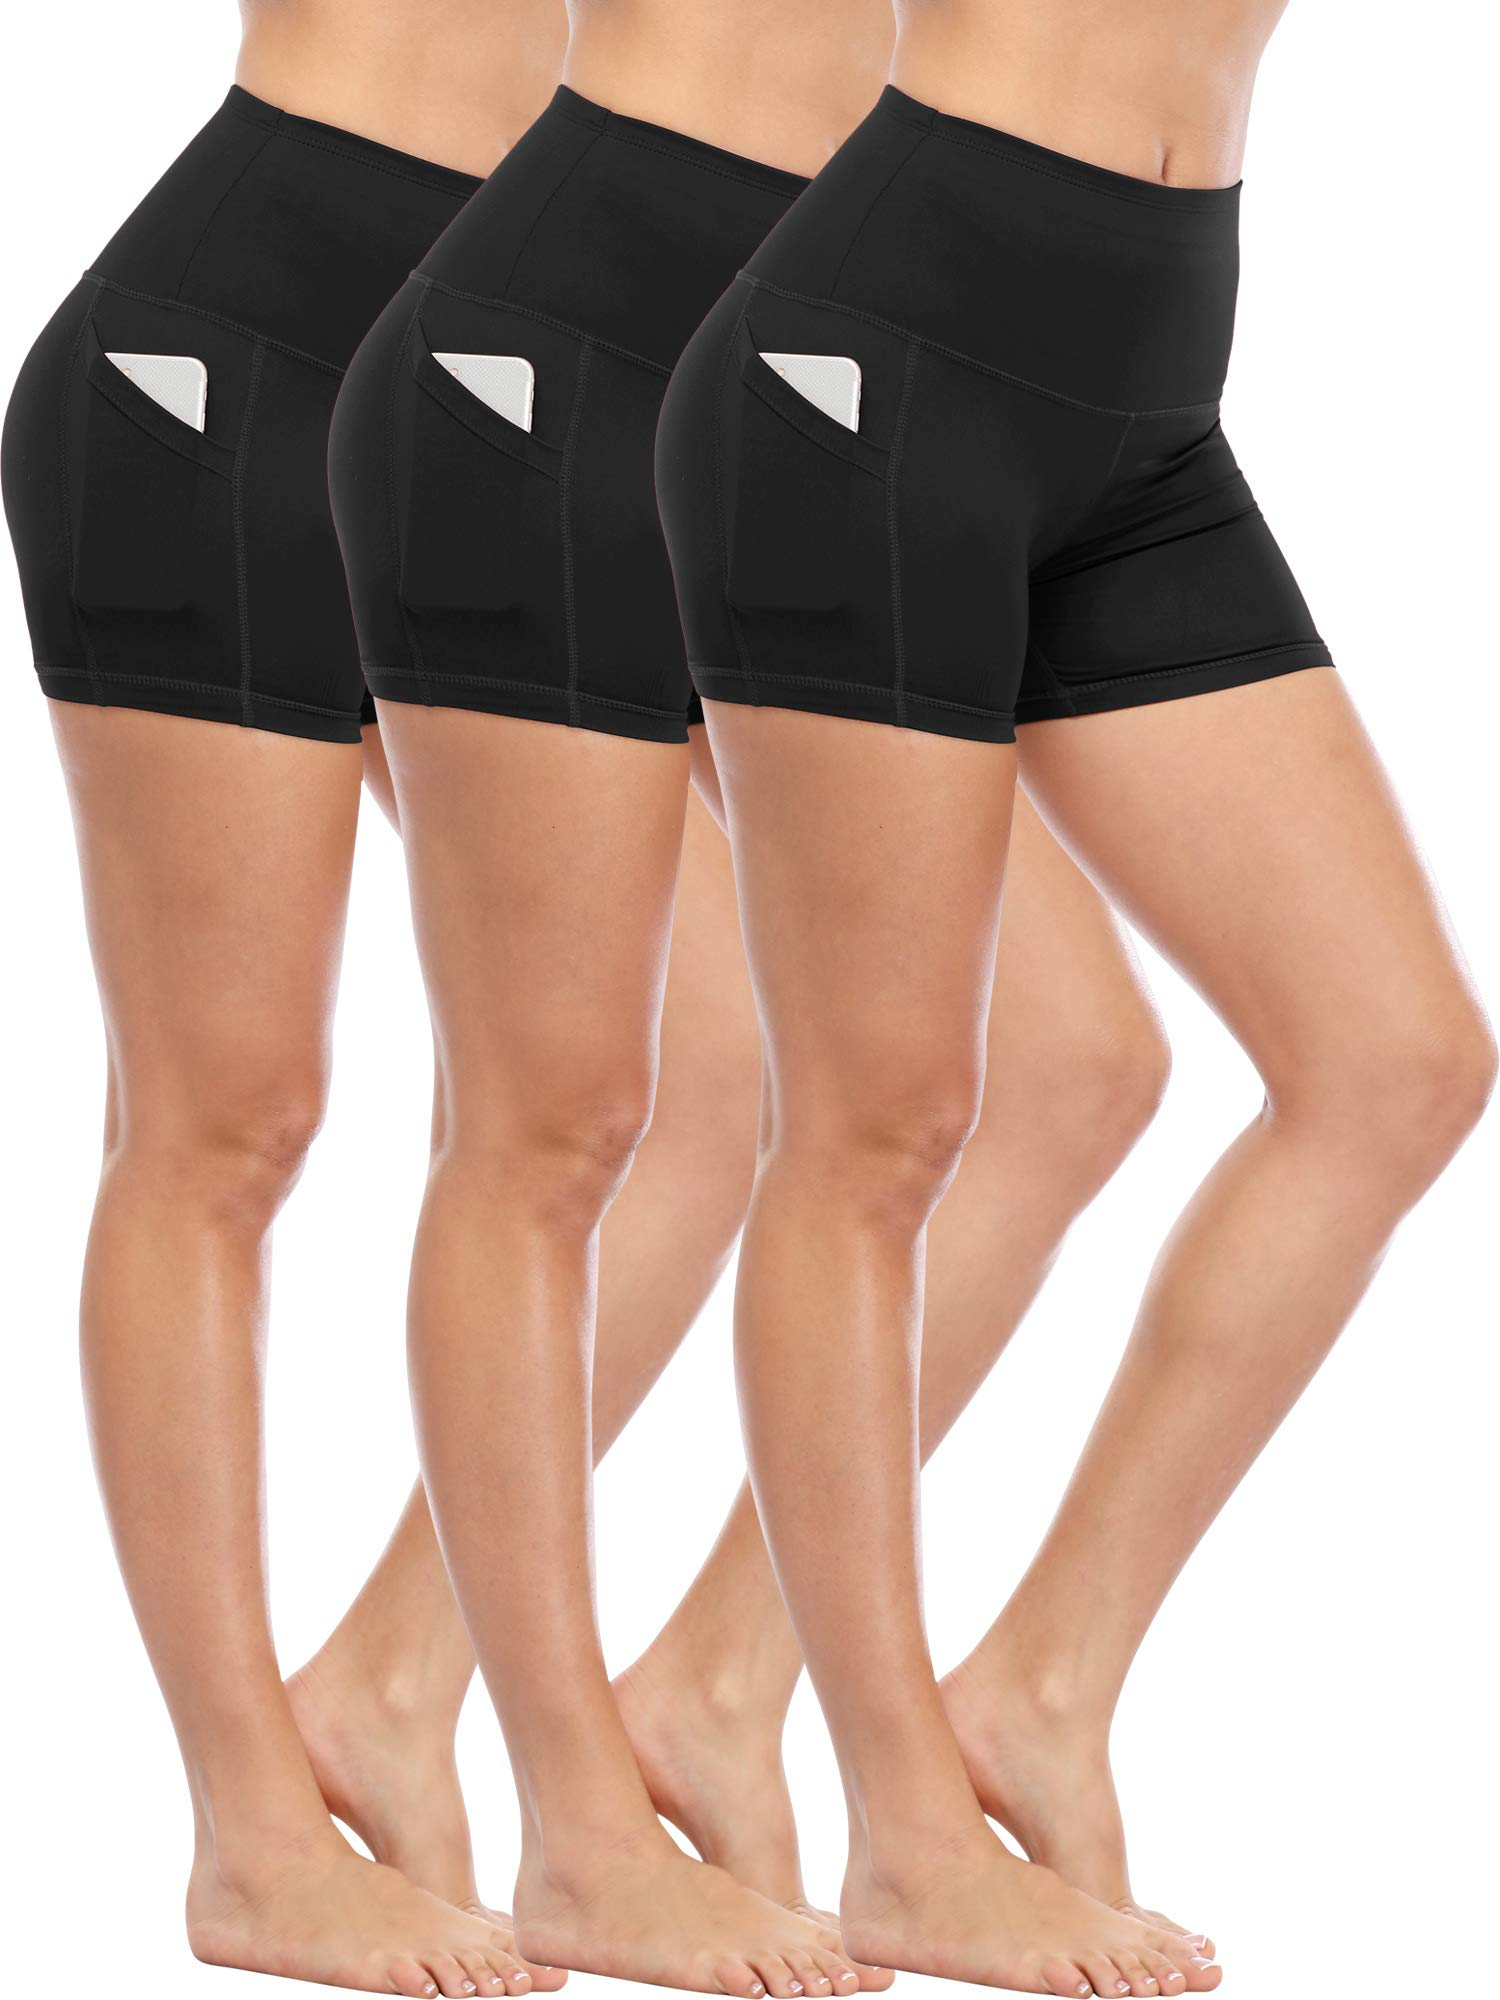 Cadmus Women's Tummy Control Workout Running Short Out Pocket,3 Pack,1016,Black & Black & Black,Large by Cadmus